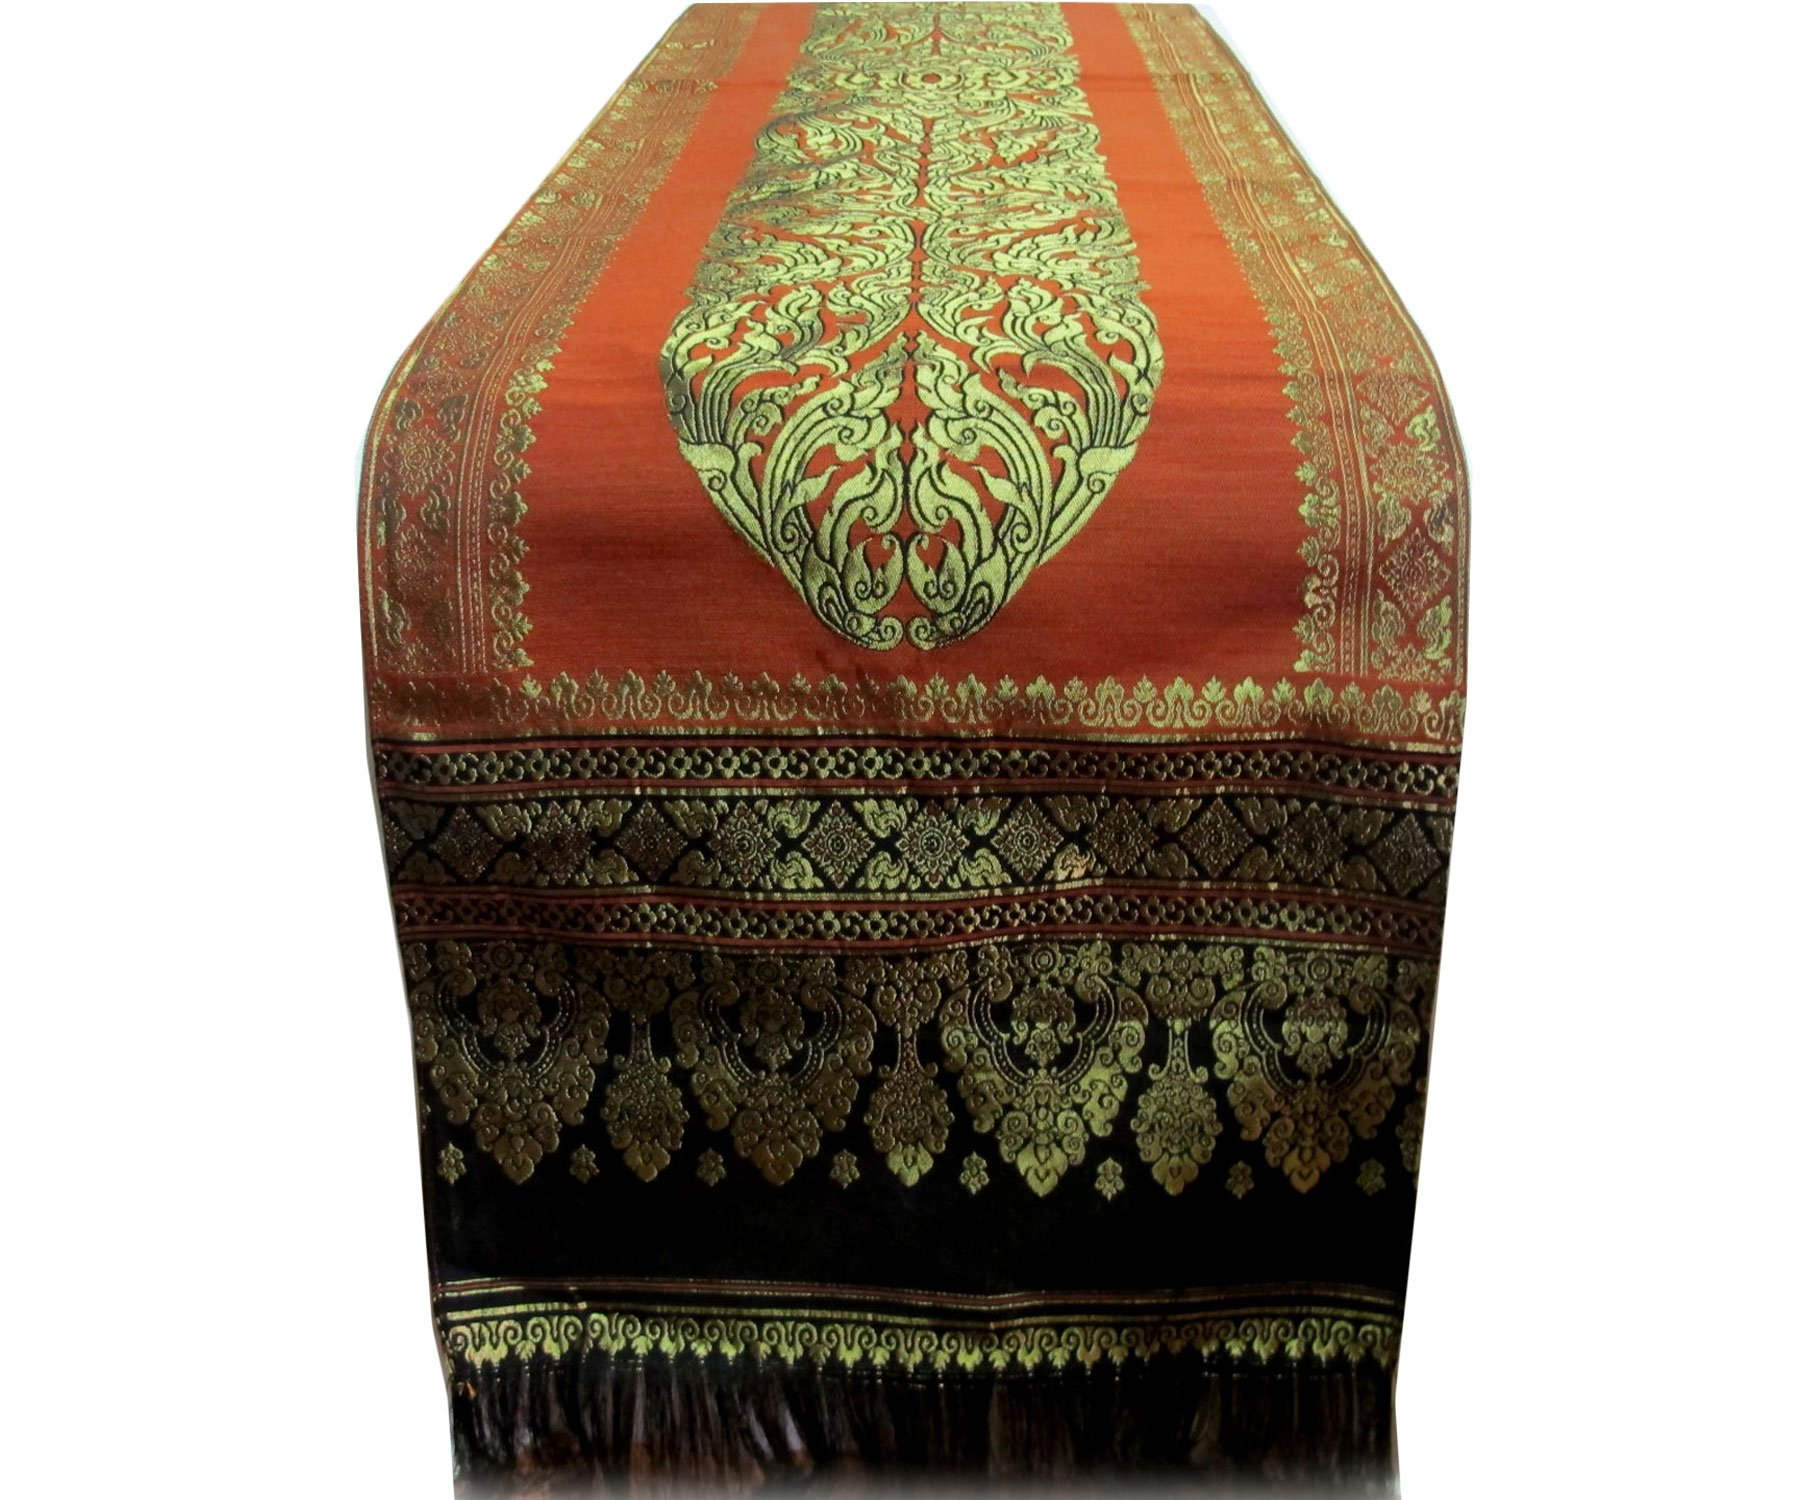 NICE THAI SILK TABLE/BED RUNNER ON SELL WITH COMPLIMENTARY